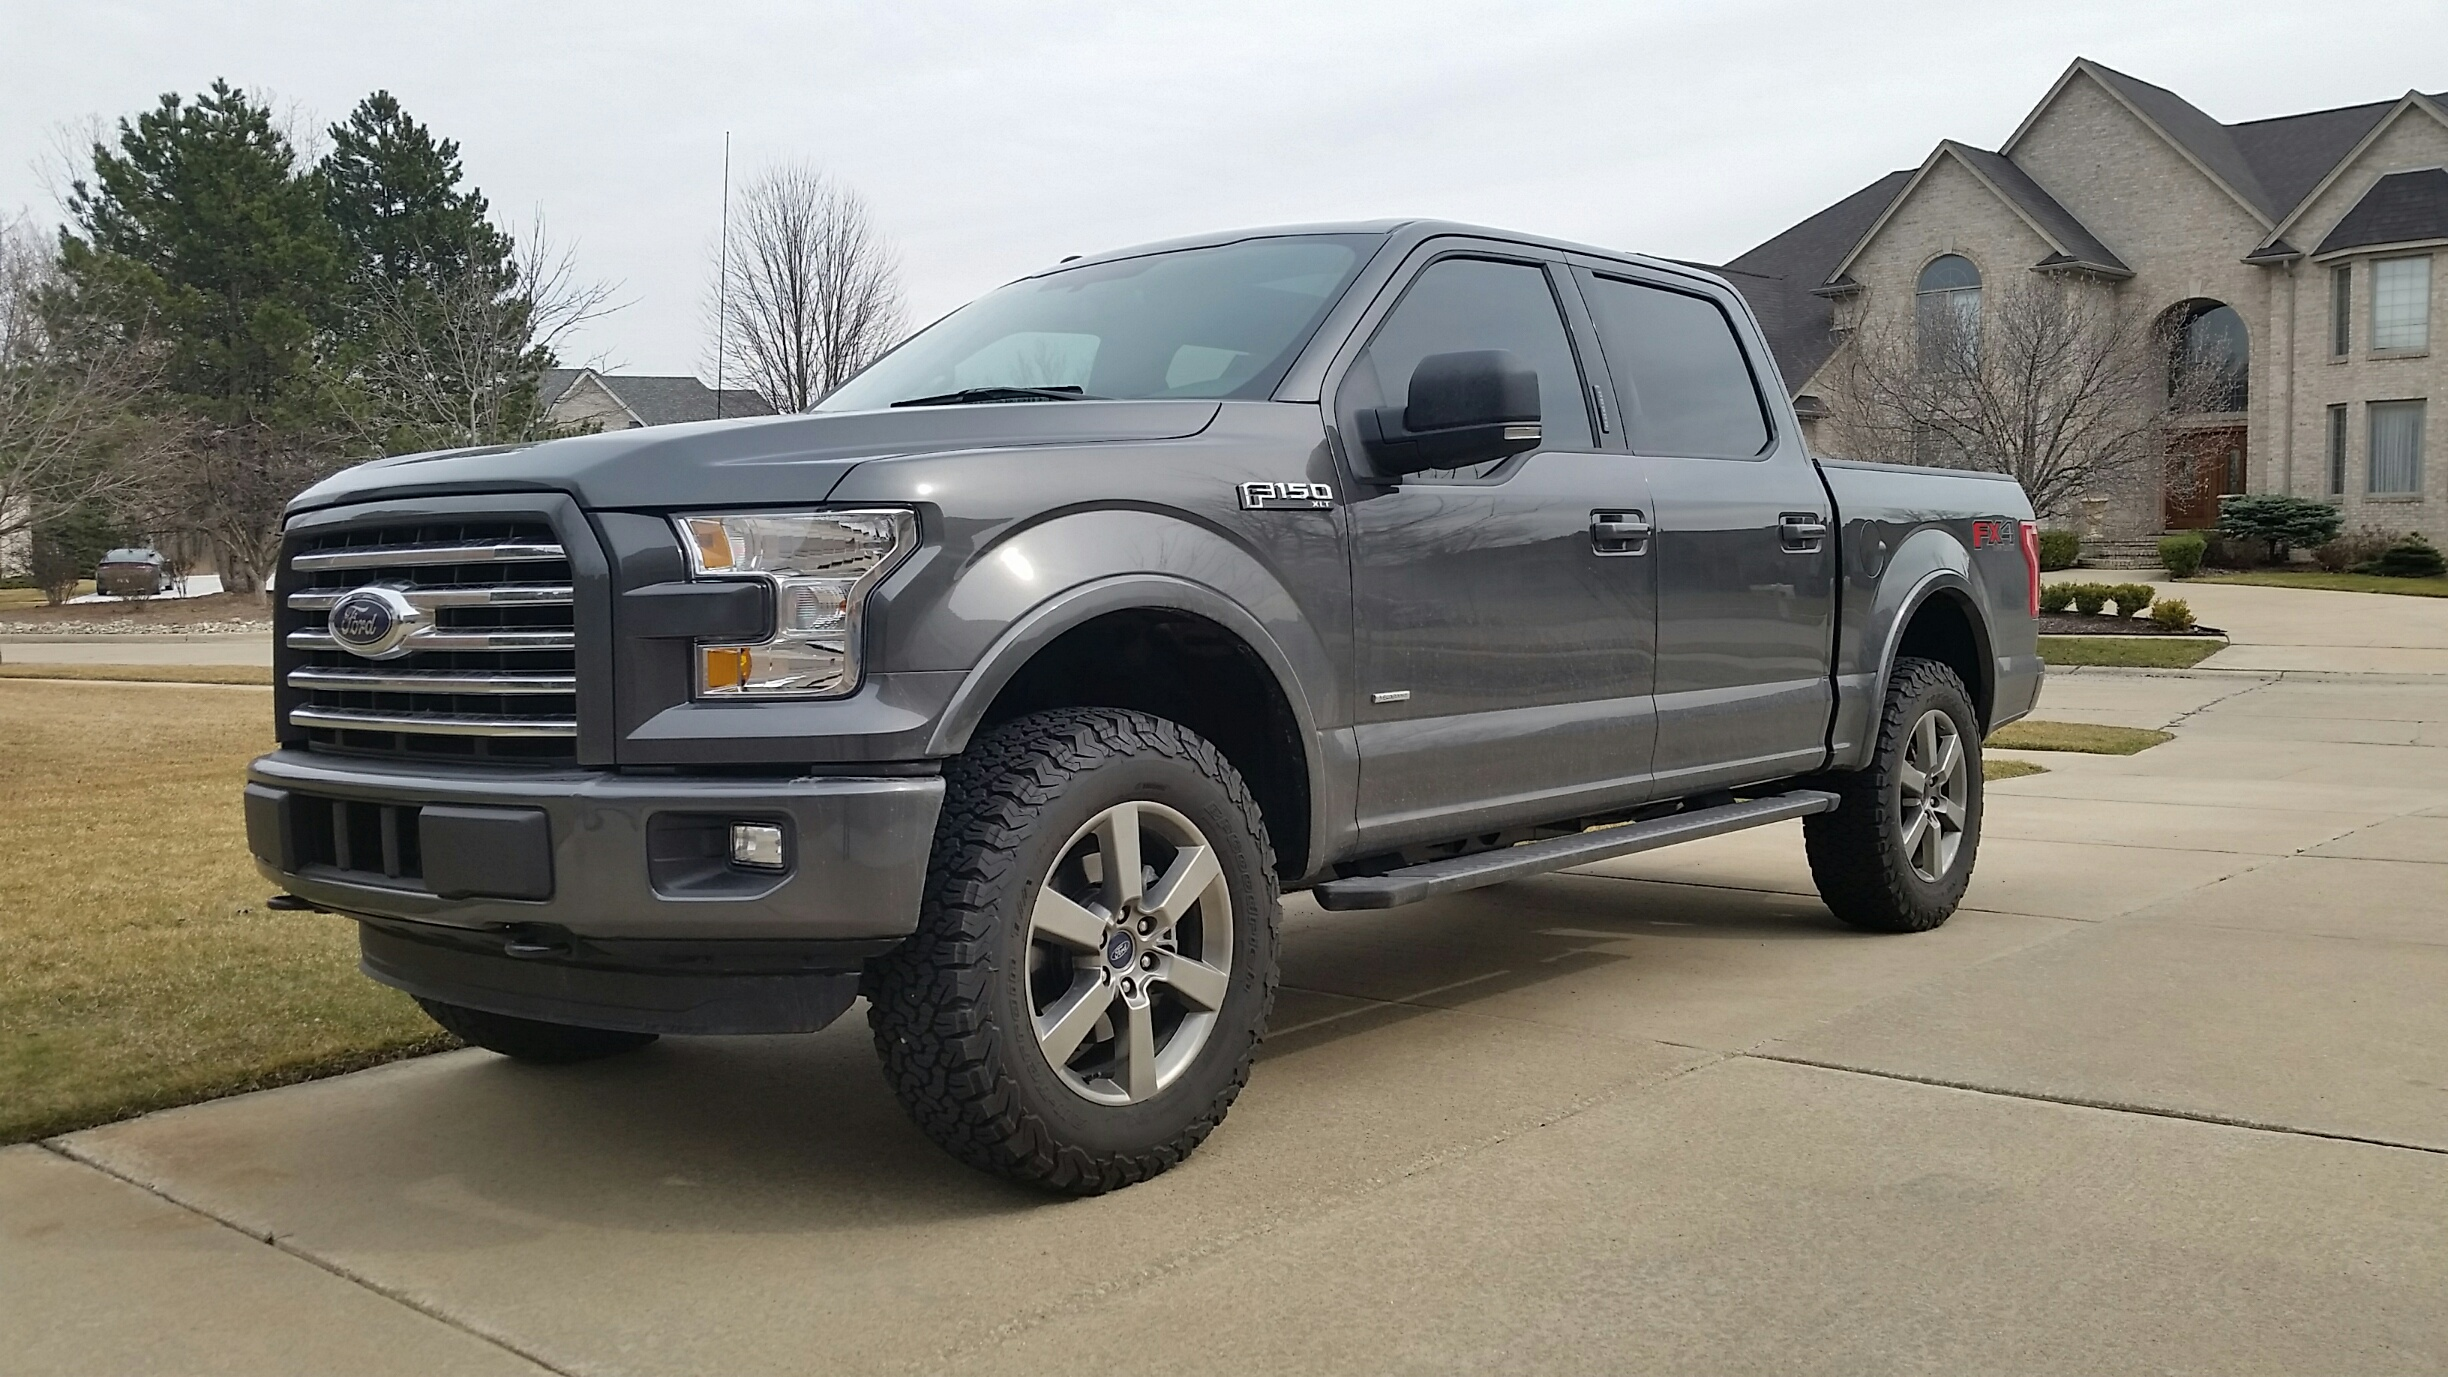 Ford Columbia Sc >> 2016 XLT SC SPORT FX4 Magnetic Build - Leveled